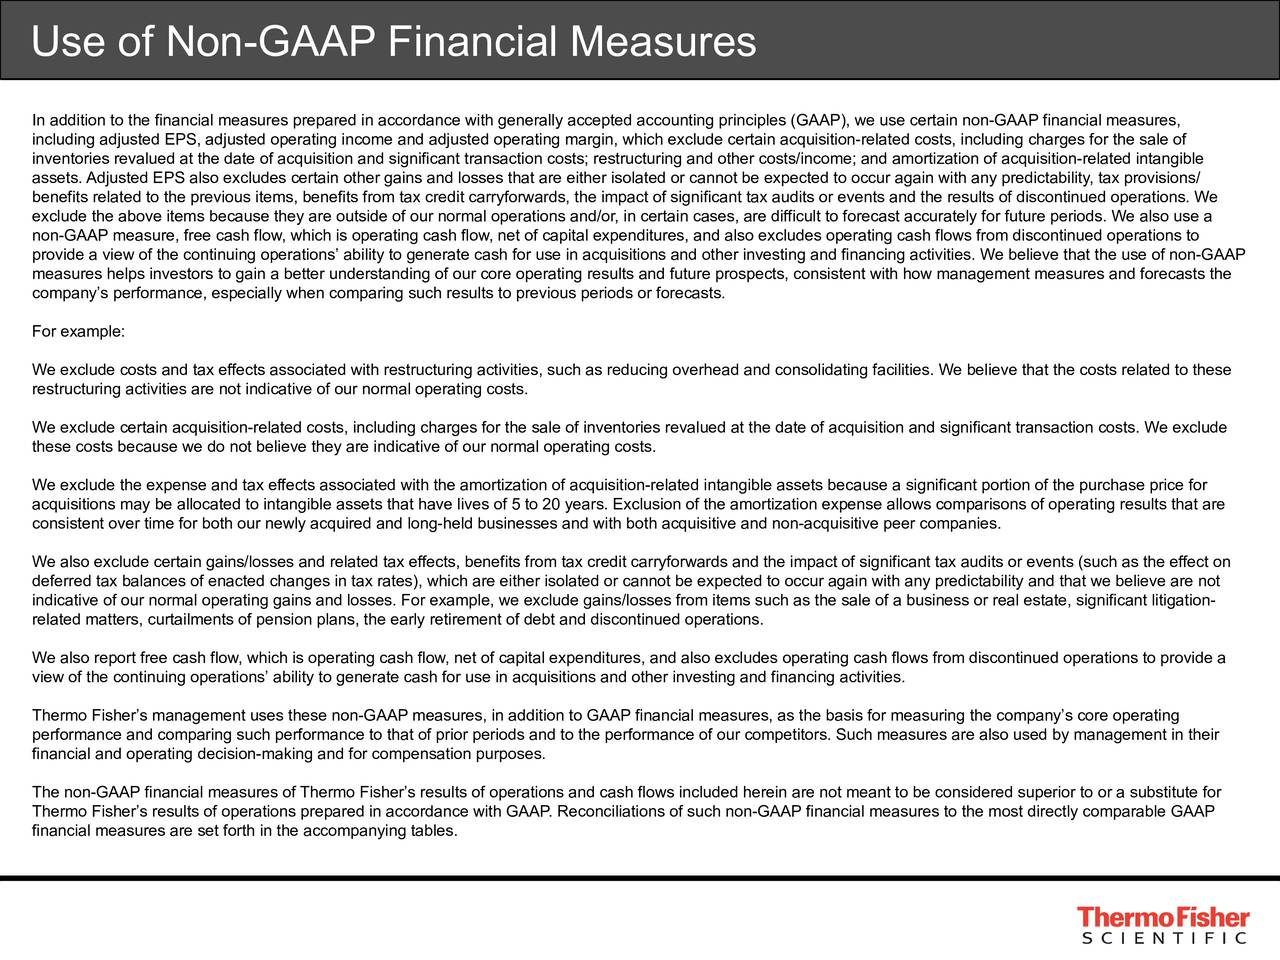 In addition to the financial measures prepared in accordance with generally accepted accounting principles (GAAP), we use certain non-GAAP financial measures, including adjusted EPS, adjusted operating income and adjusted operating margin, which exclude certain acquisition-related costs, including charges for the sale of inventories revalued at the date of acquisition and significant transaction costs; restructuring and other costs/income; and amortization of acquisition-related intangible assets. Adjusted EPS also excludes certain other gains and losses that are either isolated or cannot be expected to occur again with any predictability, tax provisions/ benefits related to the previous items, benefits from tax credit carryforwards, the impact of significant tax audits or events and the results of discontinued operations. We exclude the above items because they are outside of our normal operations and/or, in certain cases, are difficult to forecast accurately for future periods. We also use a non-GAAP measure, free cash flow, which is operating cash flow, net of capital expenditures, and also excludes operating cash flows from discontinued operations to provide a view of the continuing operations ability to generate cash for use in acquisitions and other investing and financing activities. We believe that the use of non-GAAP measures helps investors to gain a better understanding of our core operating results and future prospects, consistent with how management measures and forecasts the companys performance, especially when comparing such results to previous periods or forecasts. For example: We exclude costs and tax effects associated with restructuring activities, such as reducing overhead and consolidating facilities. We believe that the costs related to these restructuring activities are not indicative of our normal operating costs. We exclude certain acquisition-related costs, including charges for the sale of inventories revalued at the date of acquisition a